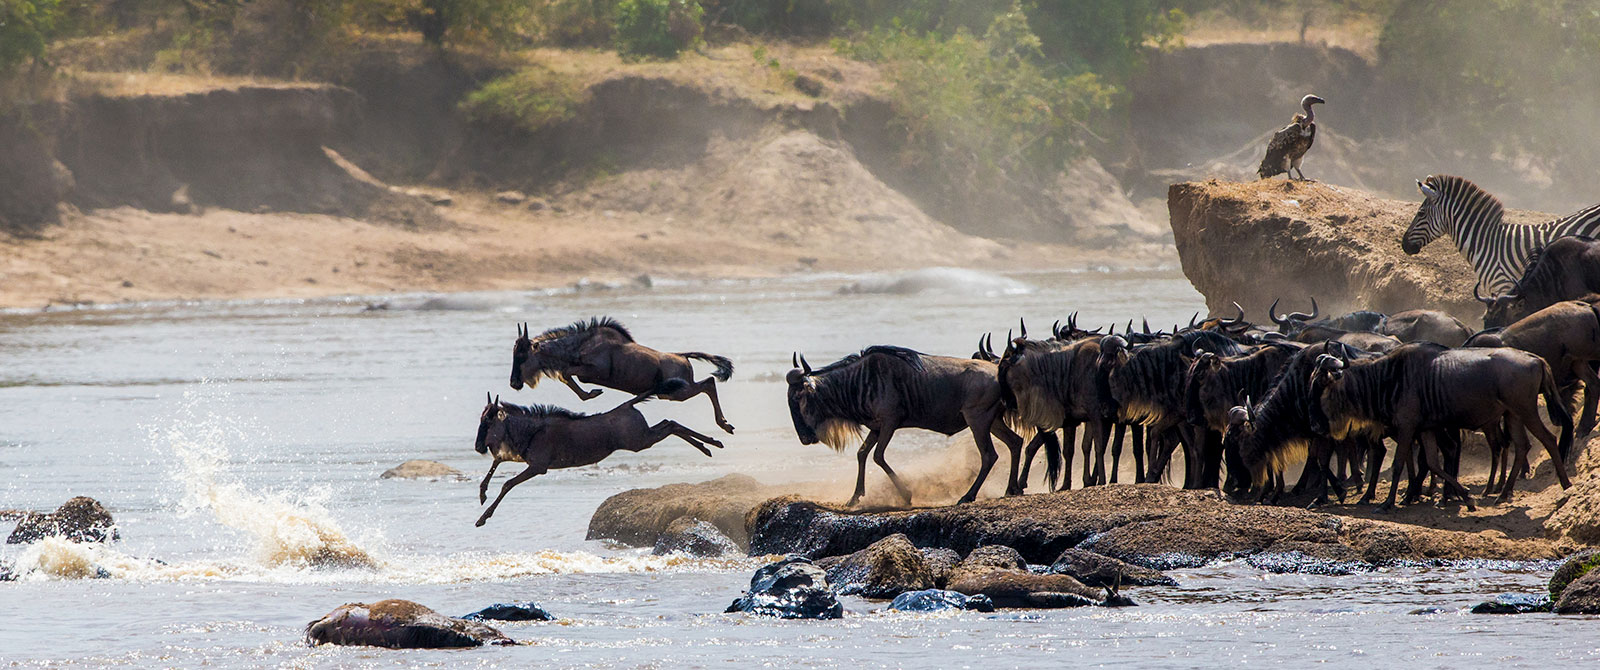 Wildebeest River Crossing - Great Migration Safaris in Kenya